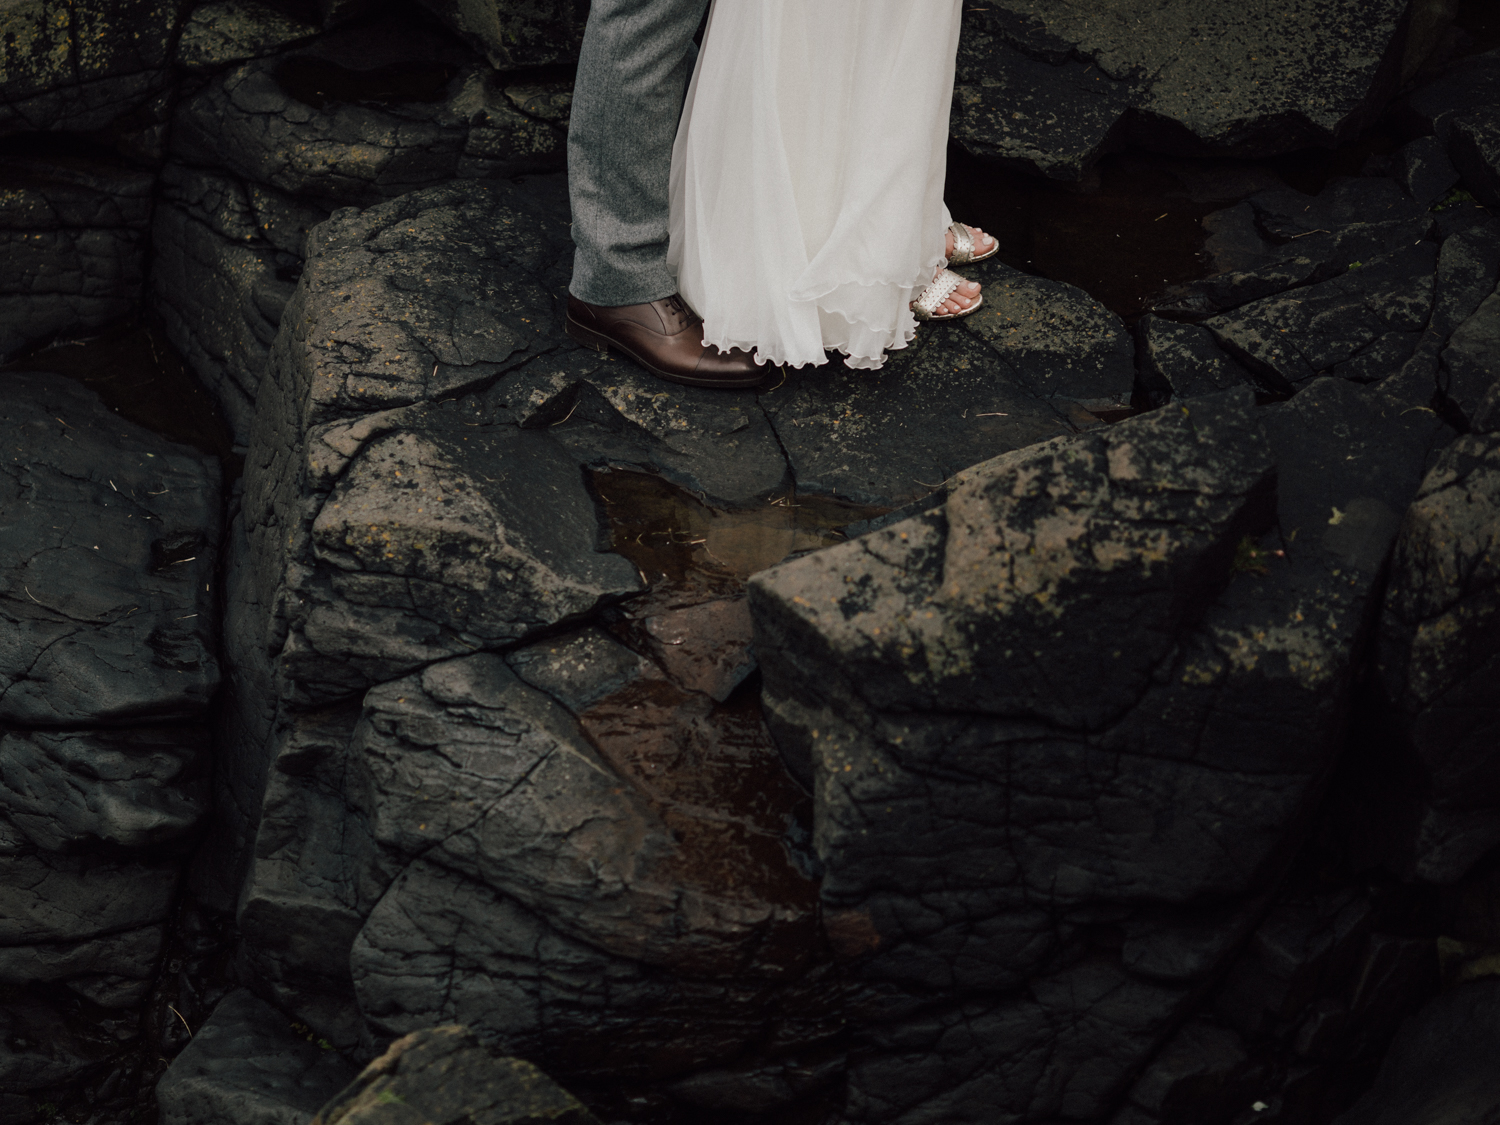 capyture-wedding-photographer-destination-nature-intimate-wedding-isle-of-skye-scotland-378